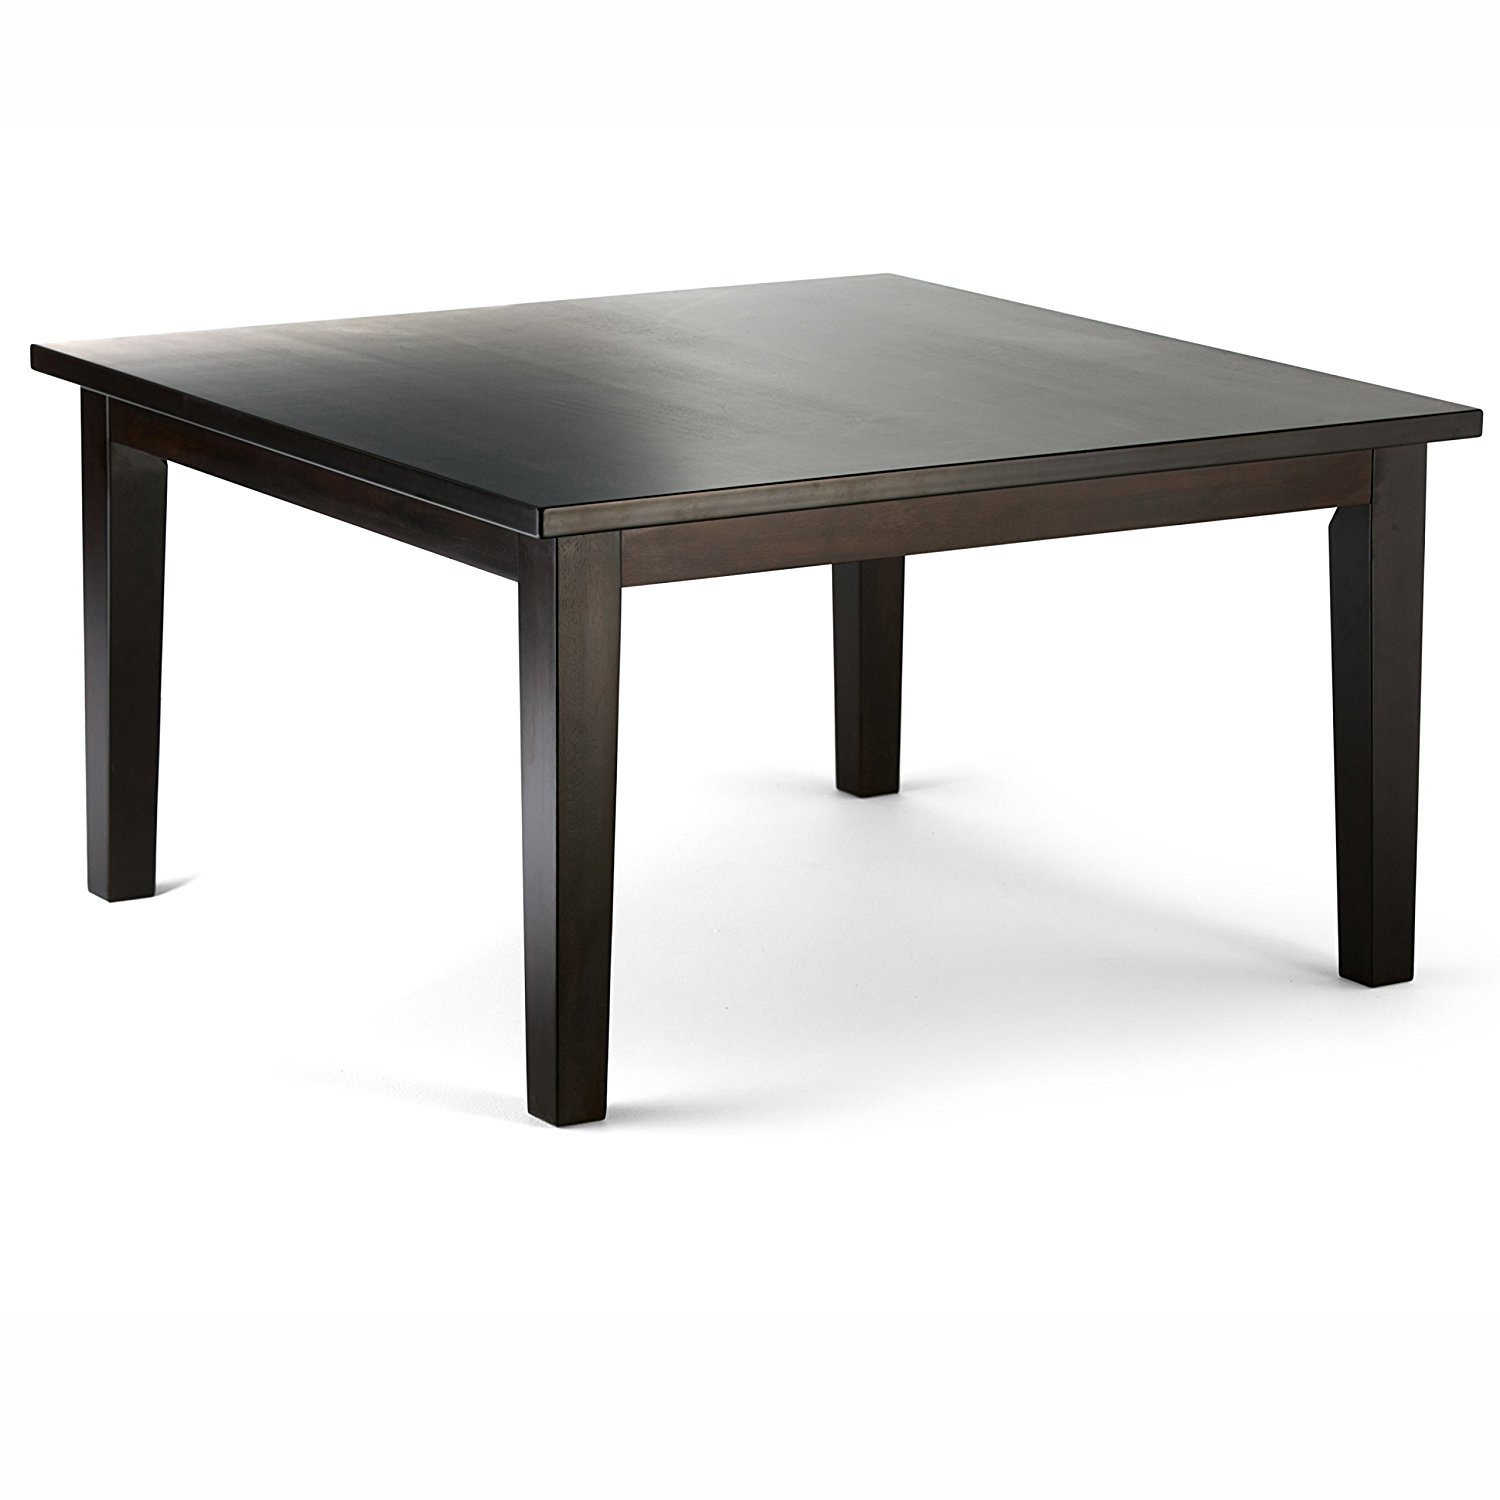 "Simpli Home Eastwood Square Dining Table, 54"" x 54"", Java Brown"